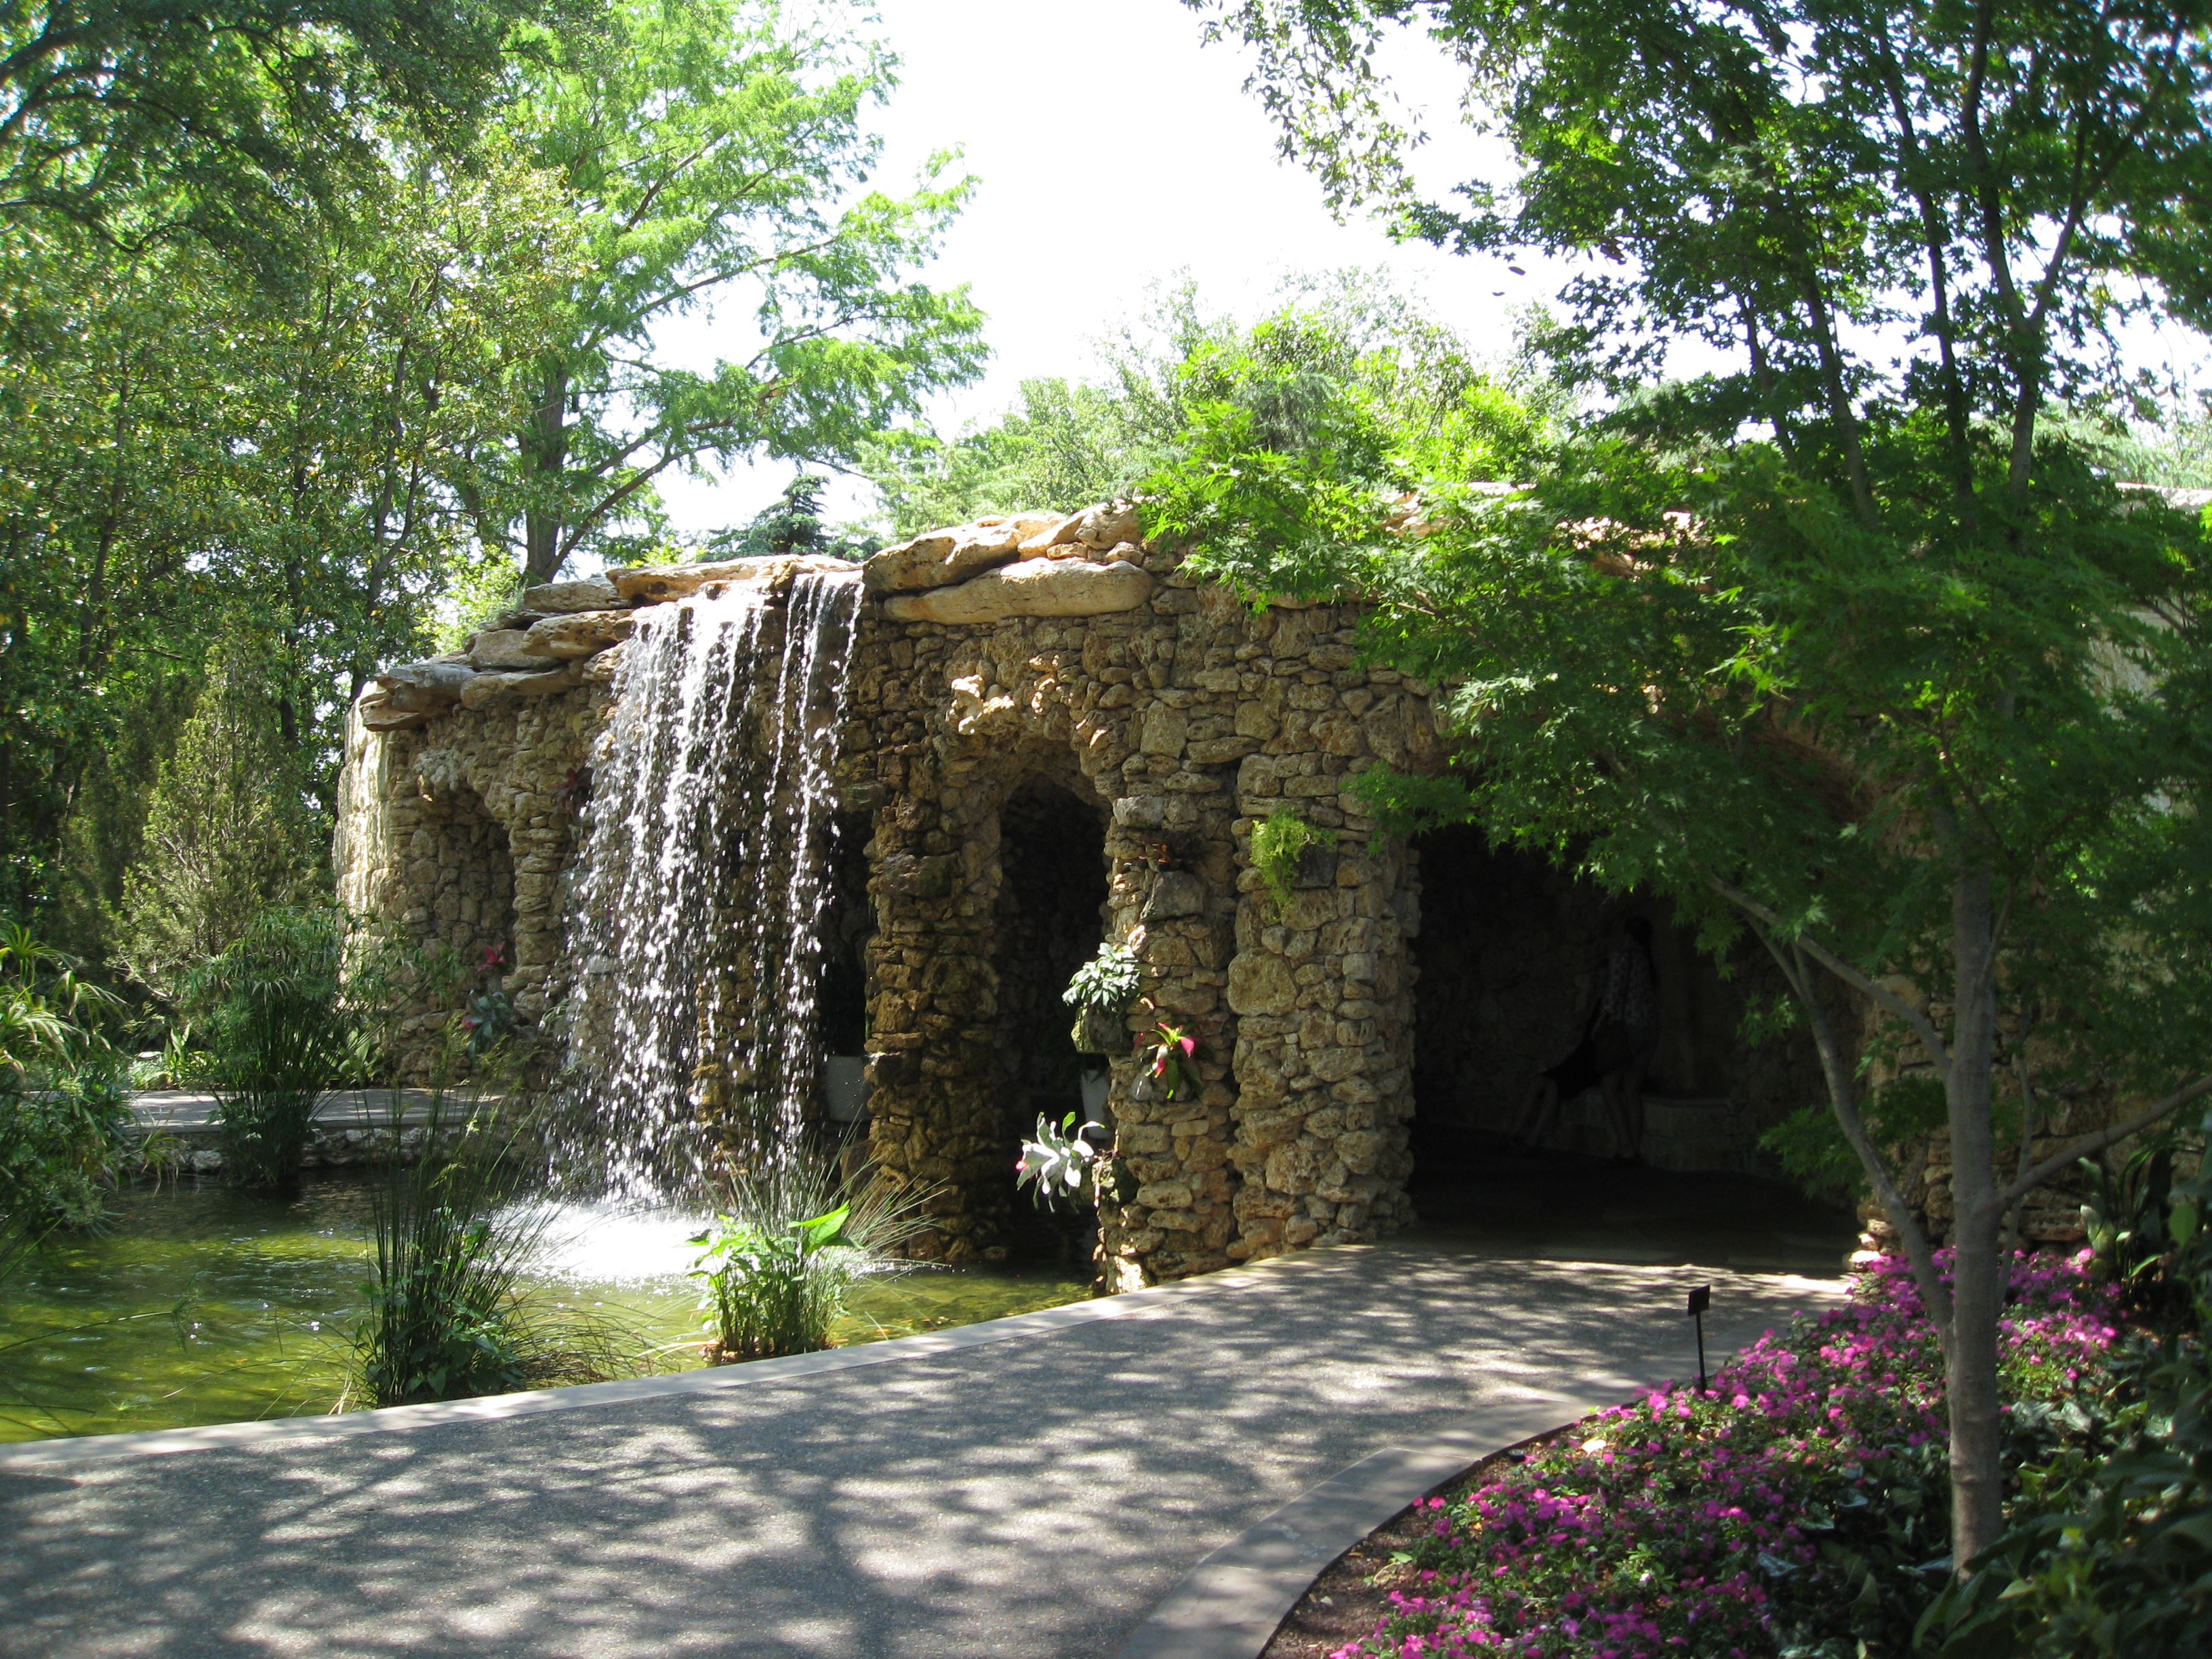 Waterfall and koi pond make a cool rest stop on a hot day.